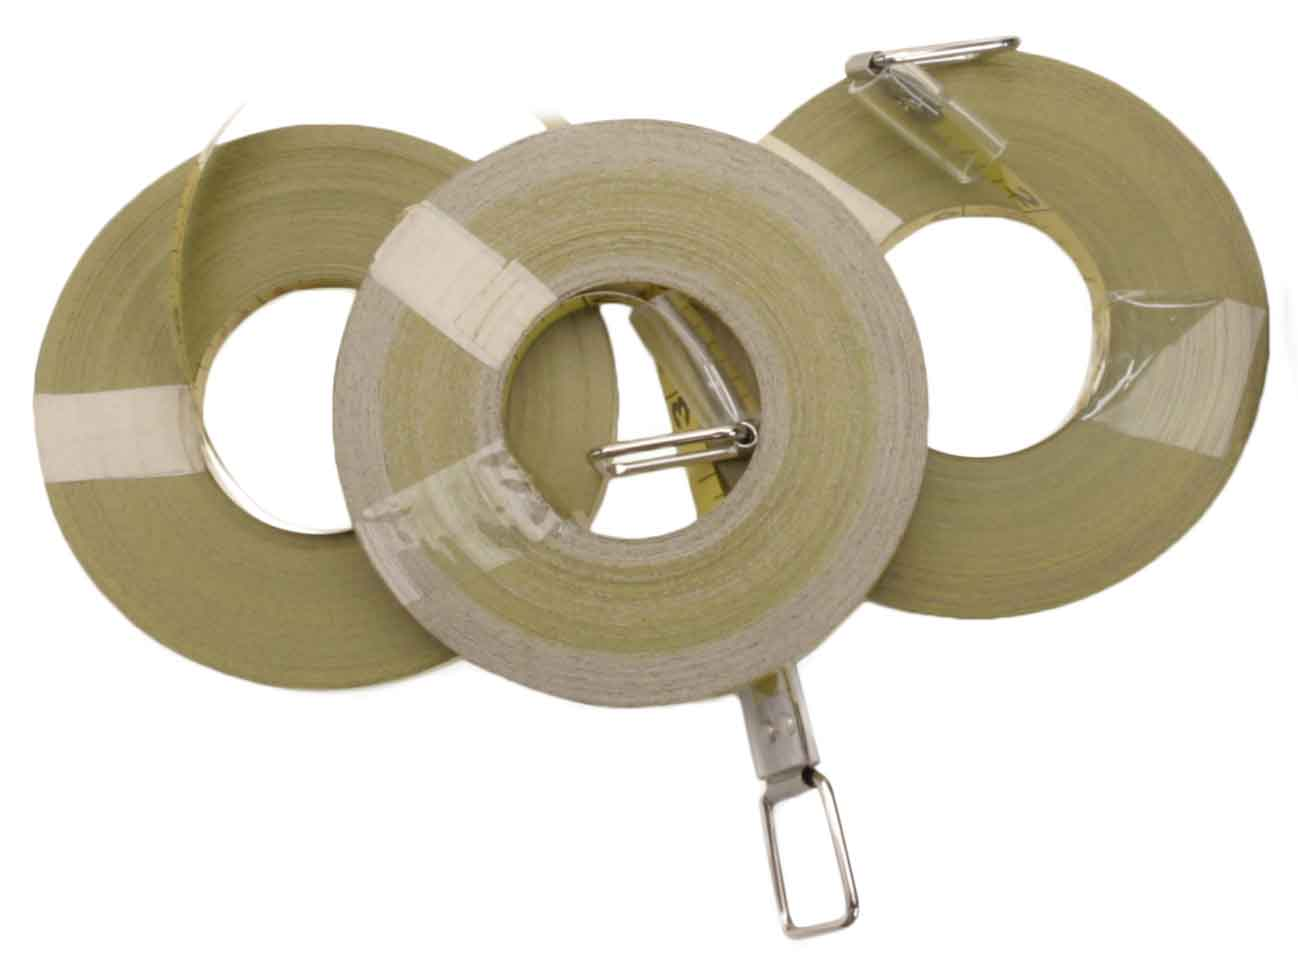 TAP 965C - 03) Spencer 965C - 50' Combination Tape Refill